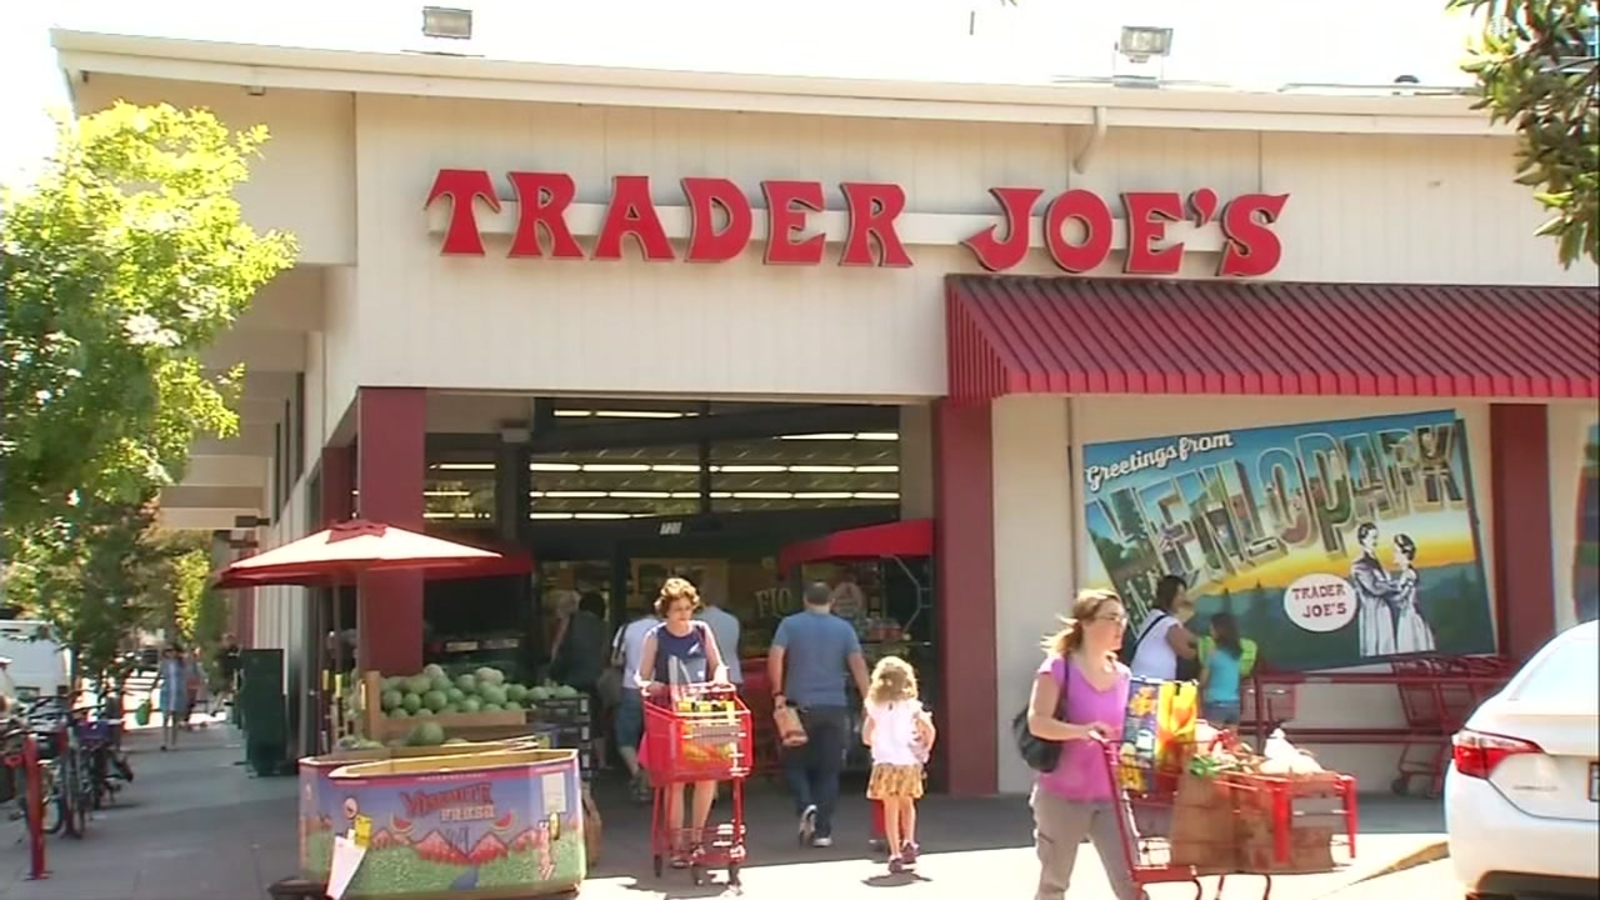 Trader Joe's says it will not rebrand ethnic food labels despite petition calling names racist